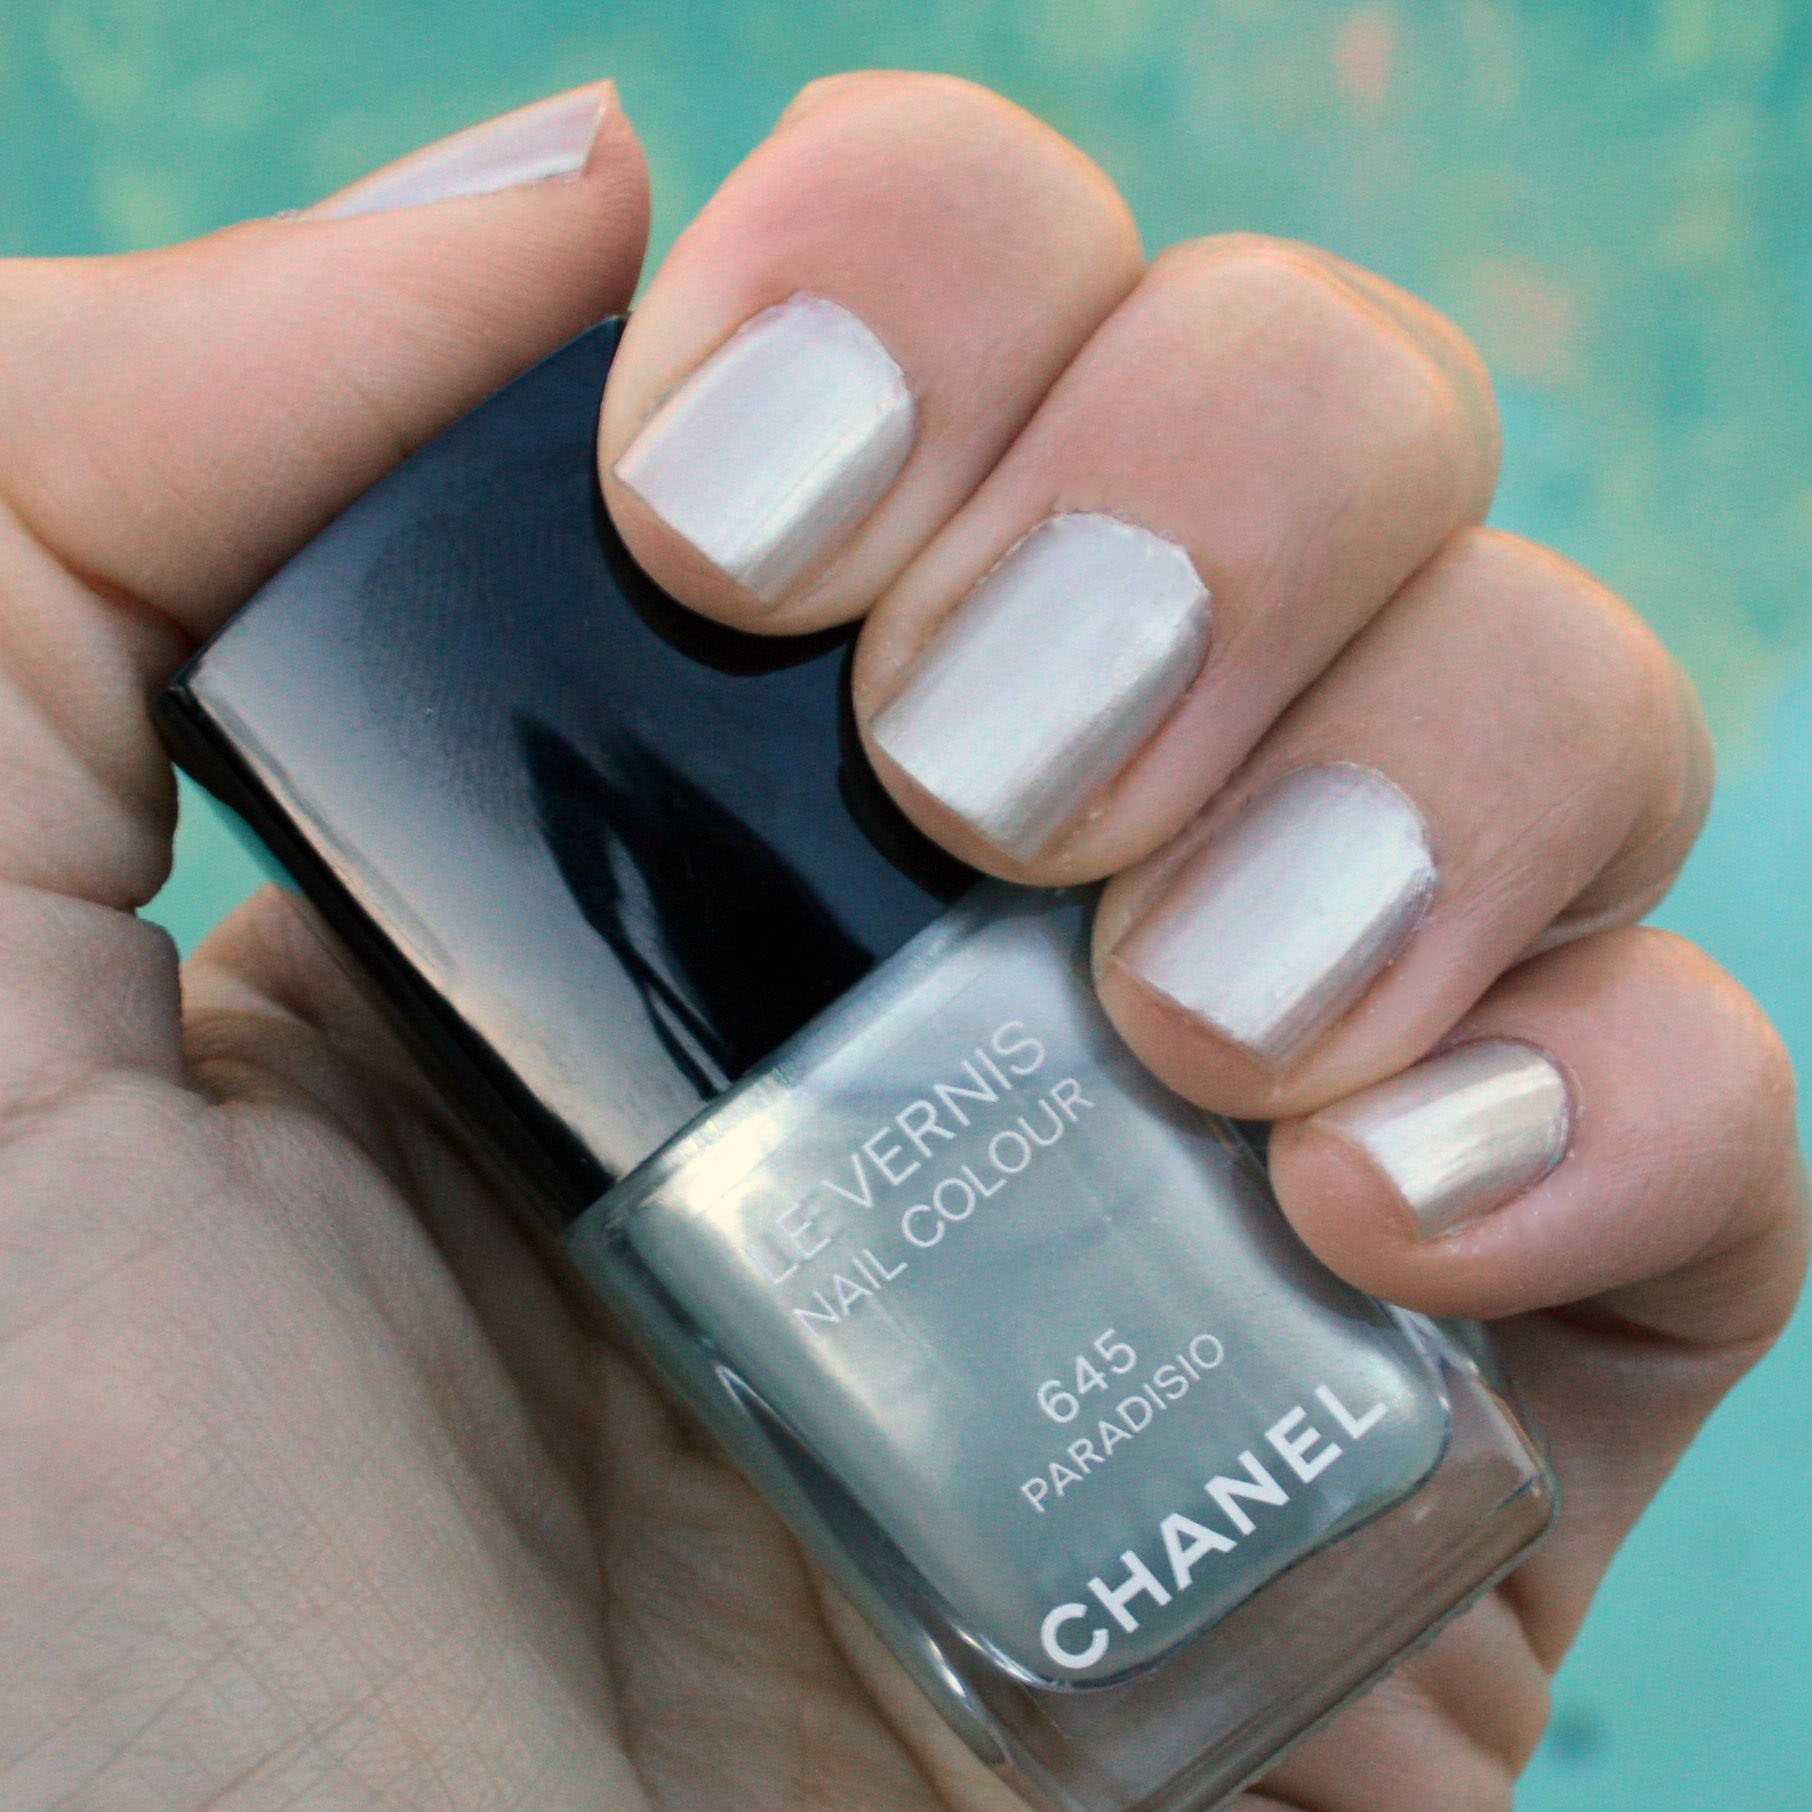 Pictured : Chanel Paradisio nail polish for spring 2015. One base coat ...